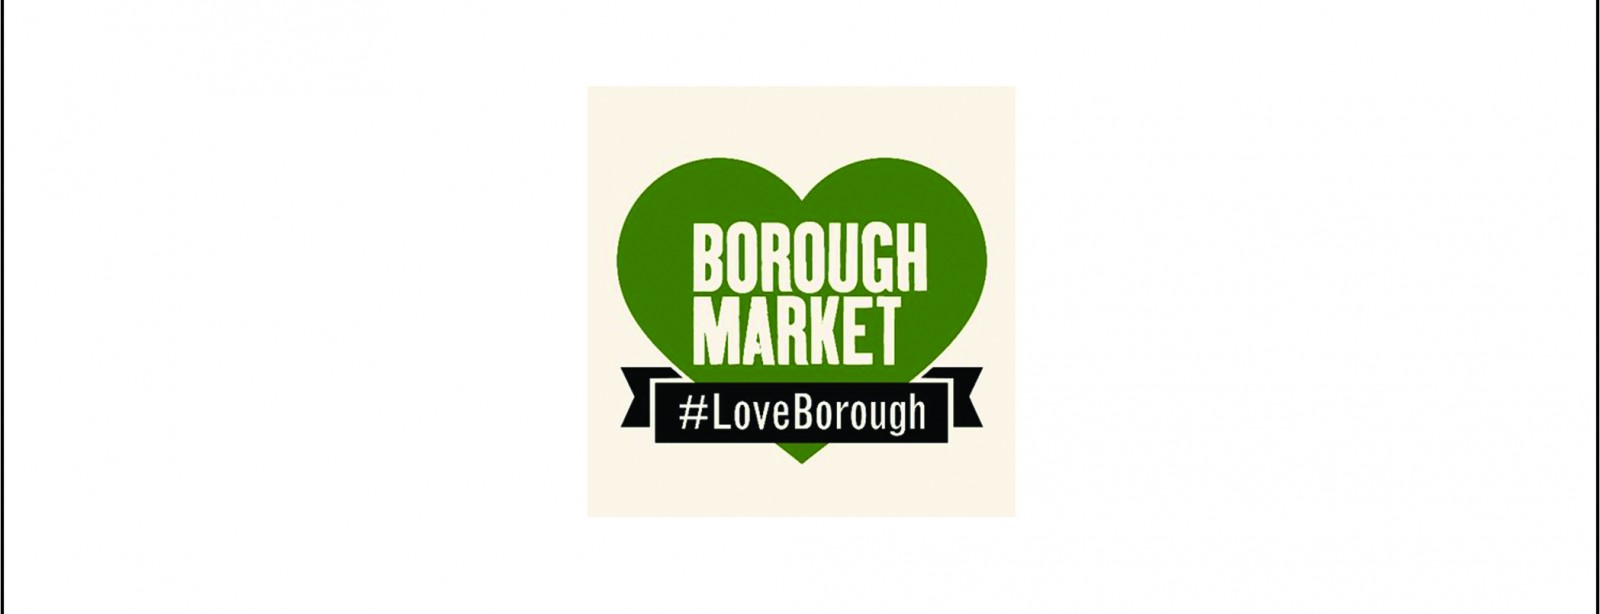 #LoveBorough